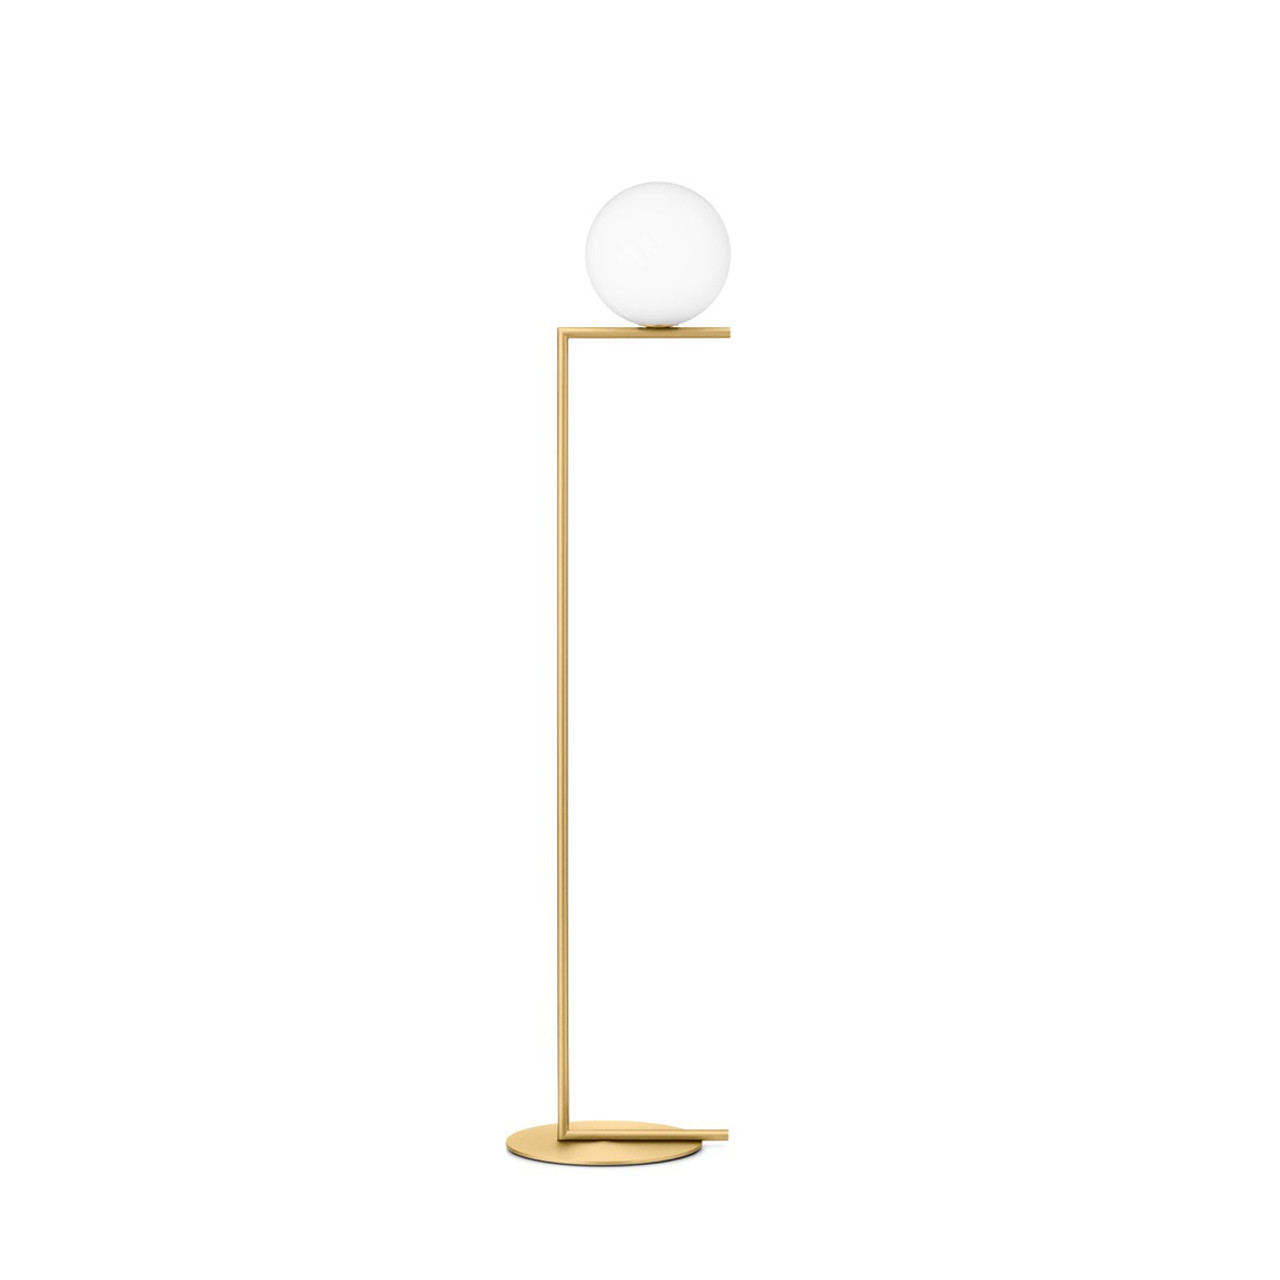 Ic Lights F Modern Floor Lamp By Michael Anastassiades Flos Usa Table Wiring Kits Uk Previous